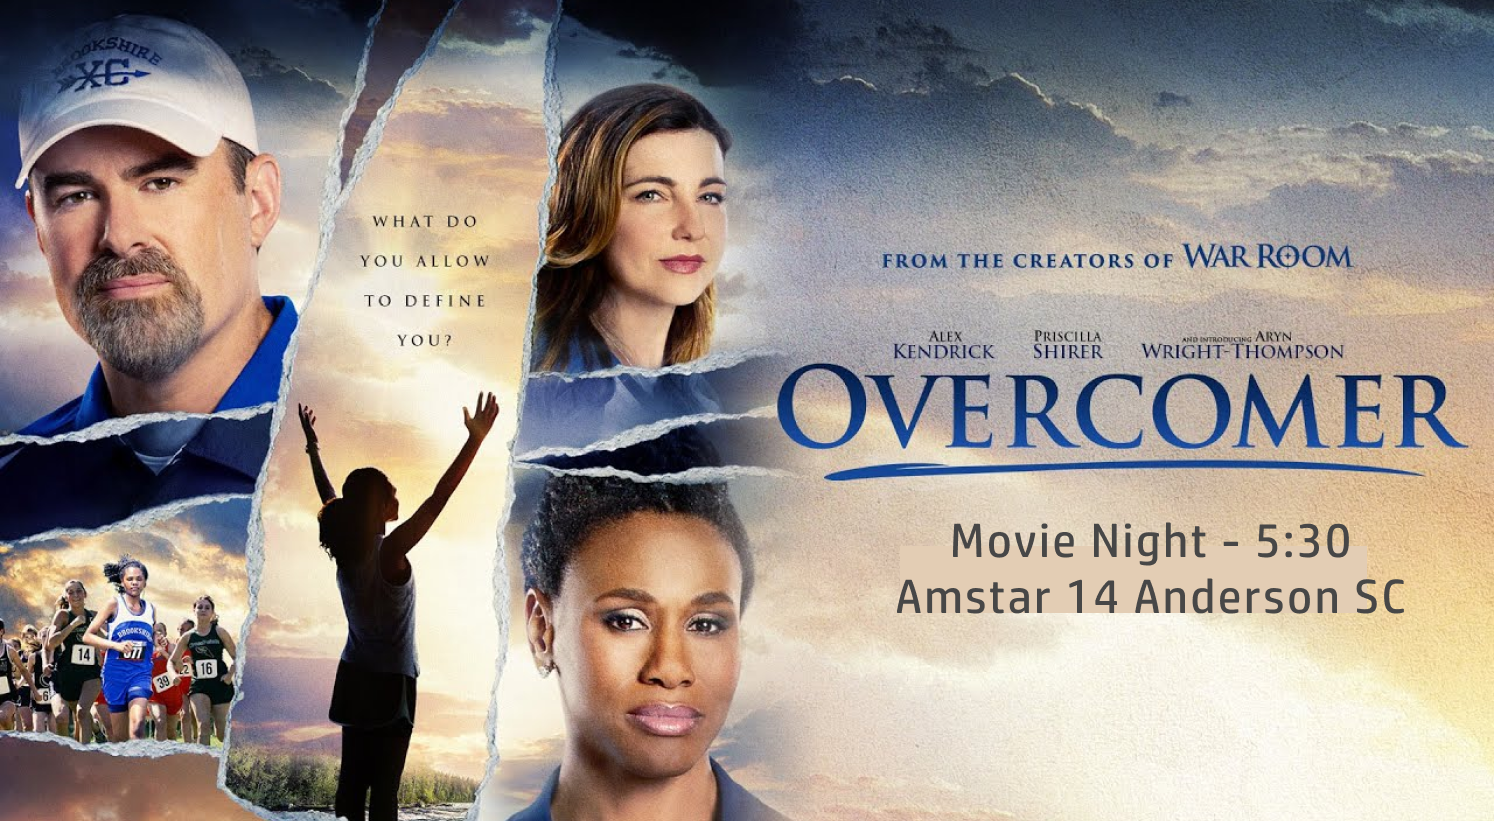 Sept. 1 st -5:30 - Come join us at Amstar 14 in Anderson SC for a movie night watching - OVERCOMER